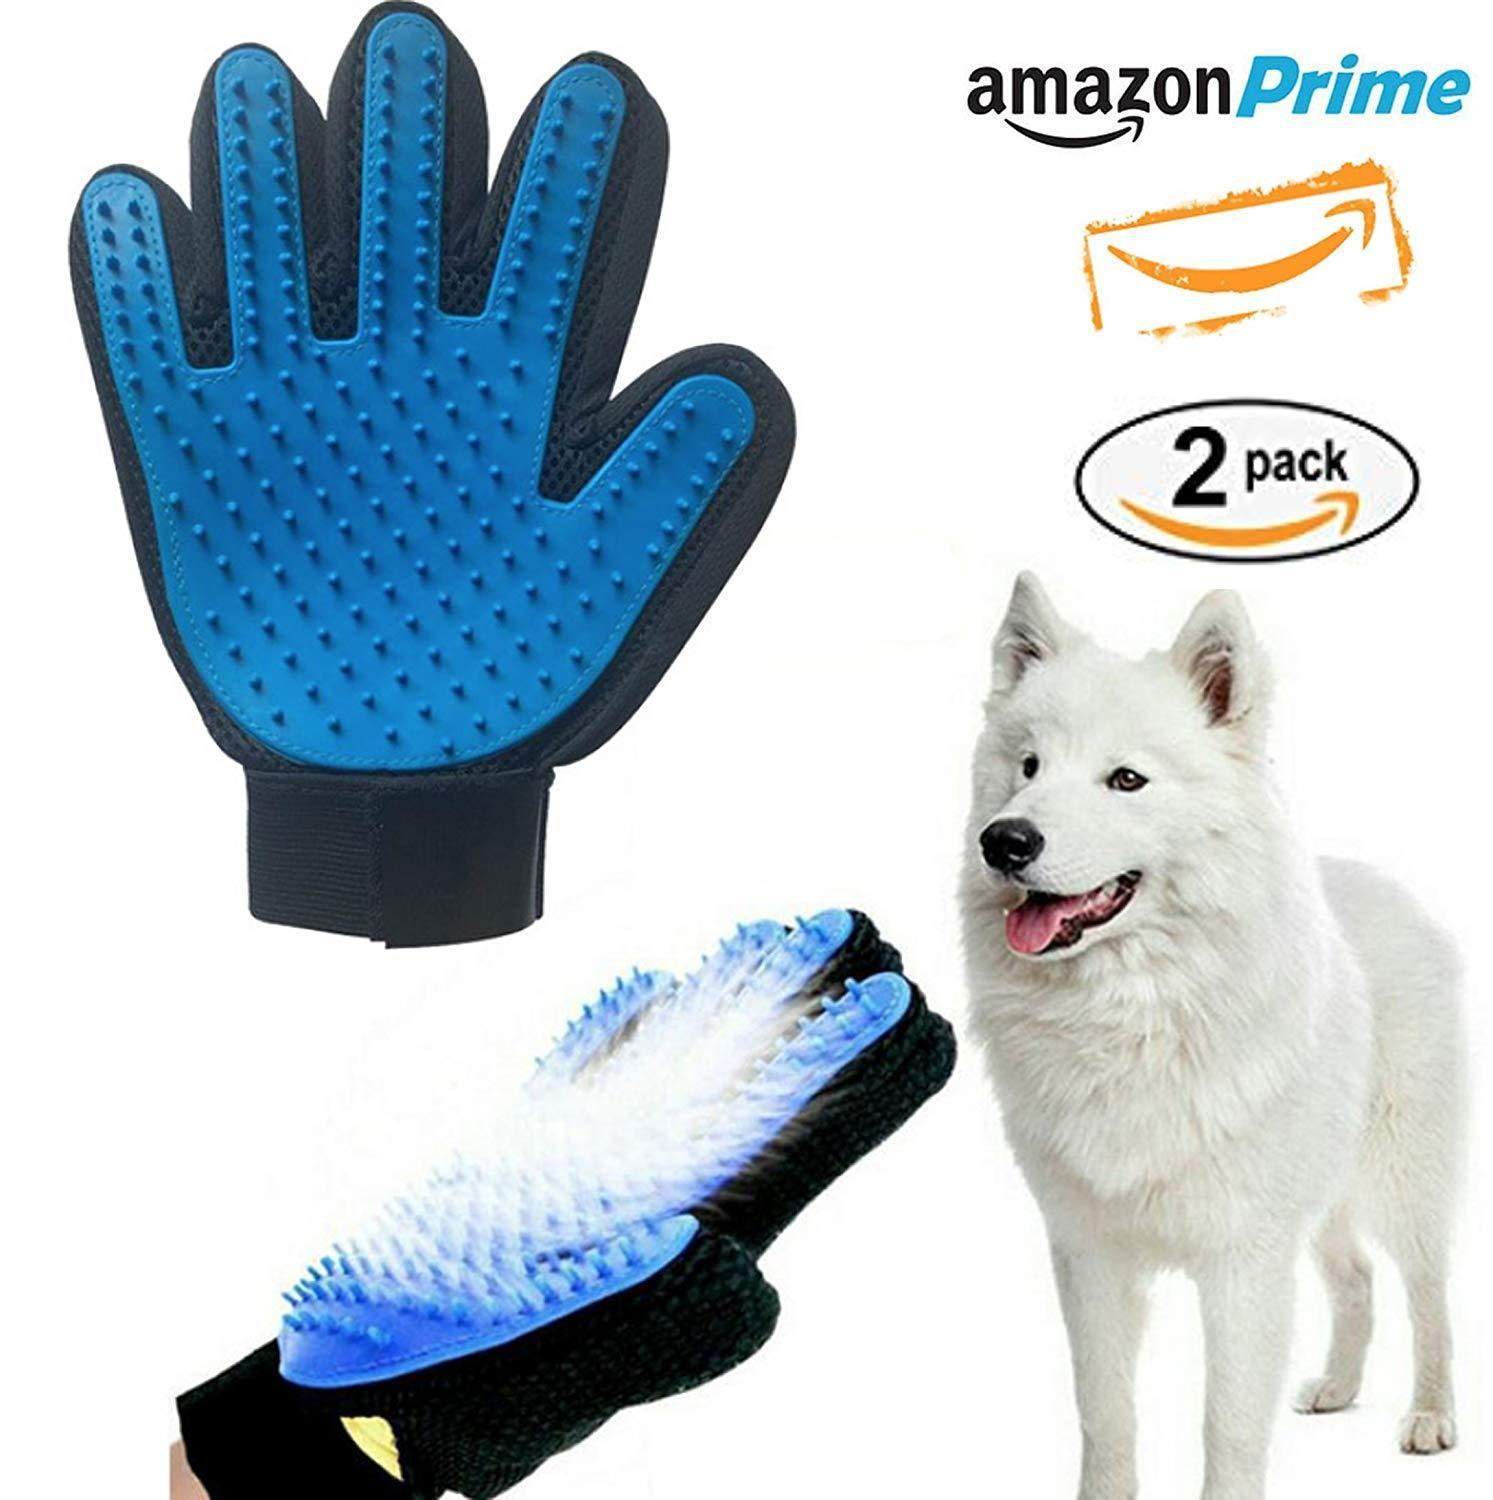 Pair of Original Pet Grooming Glove Gentle Deshedding Brush Glove Dogs,Cats, etc image 2